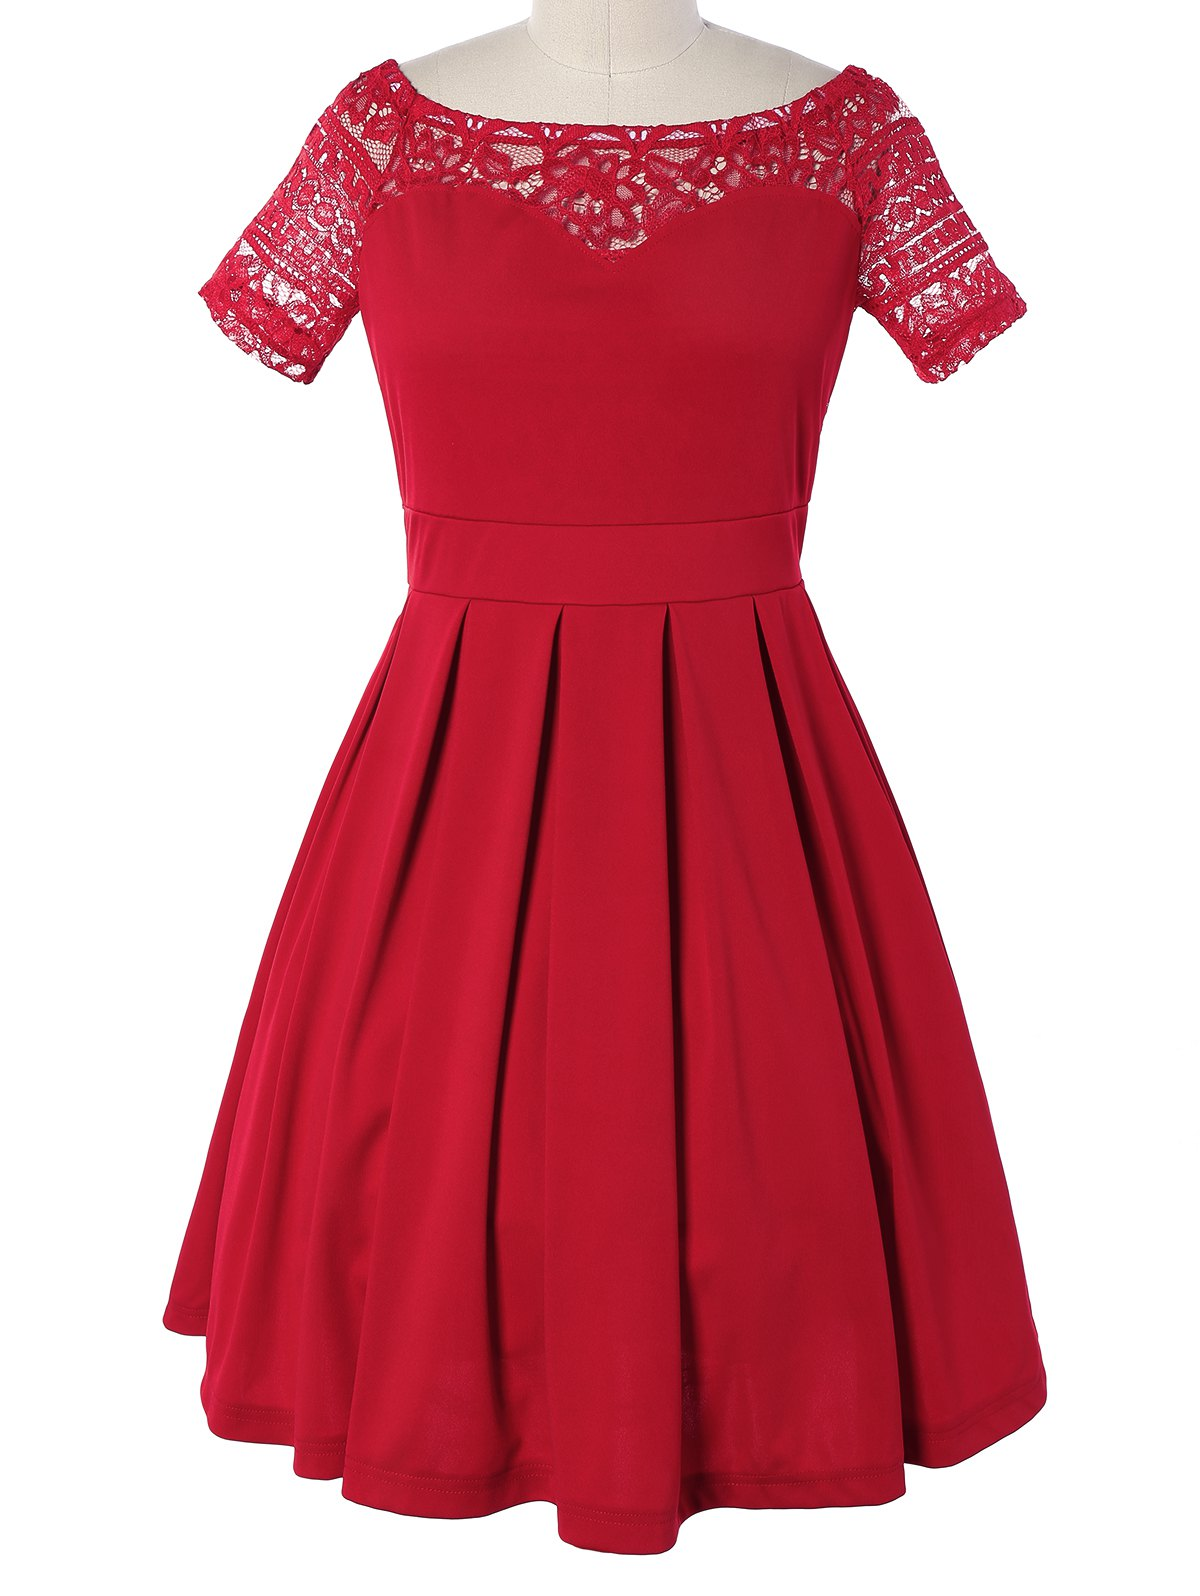 Vintage Lace Spliced Red Pleated Dress - RED XL